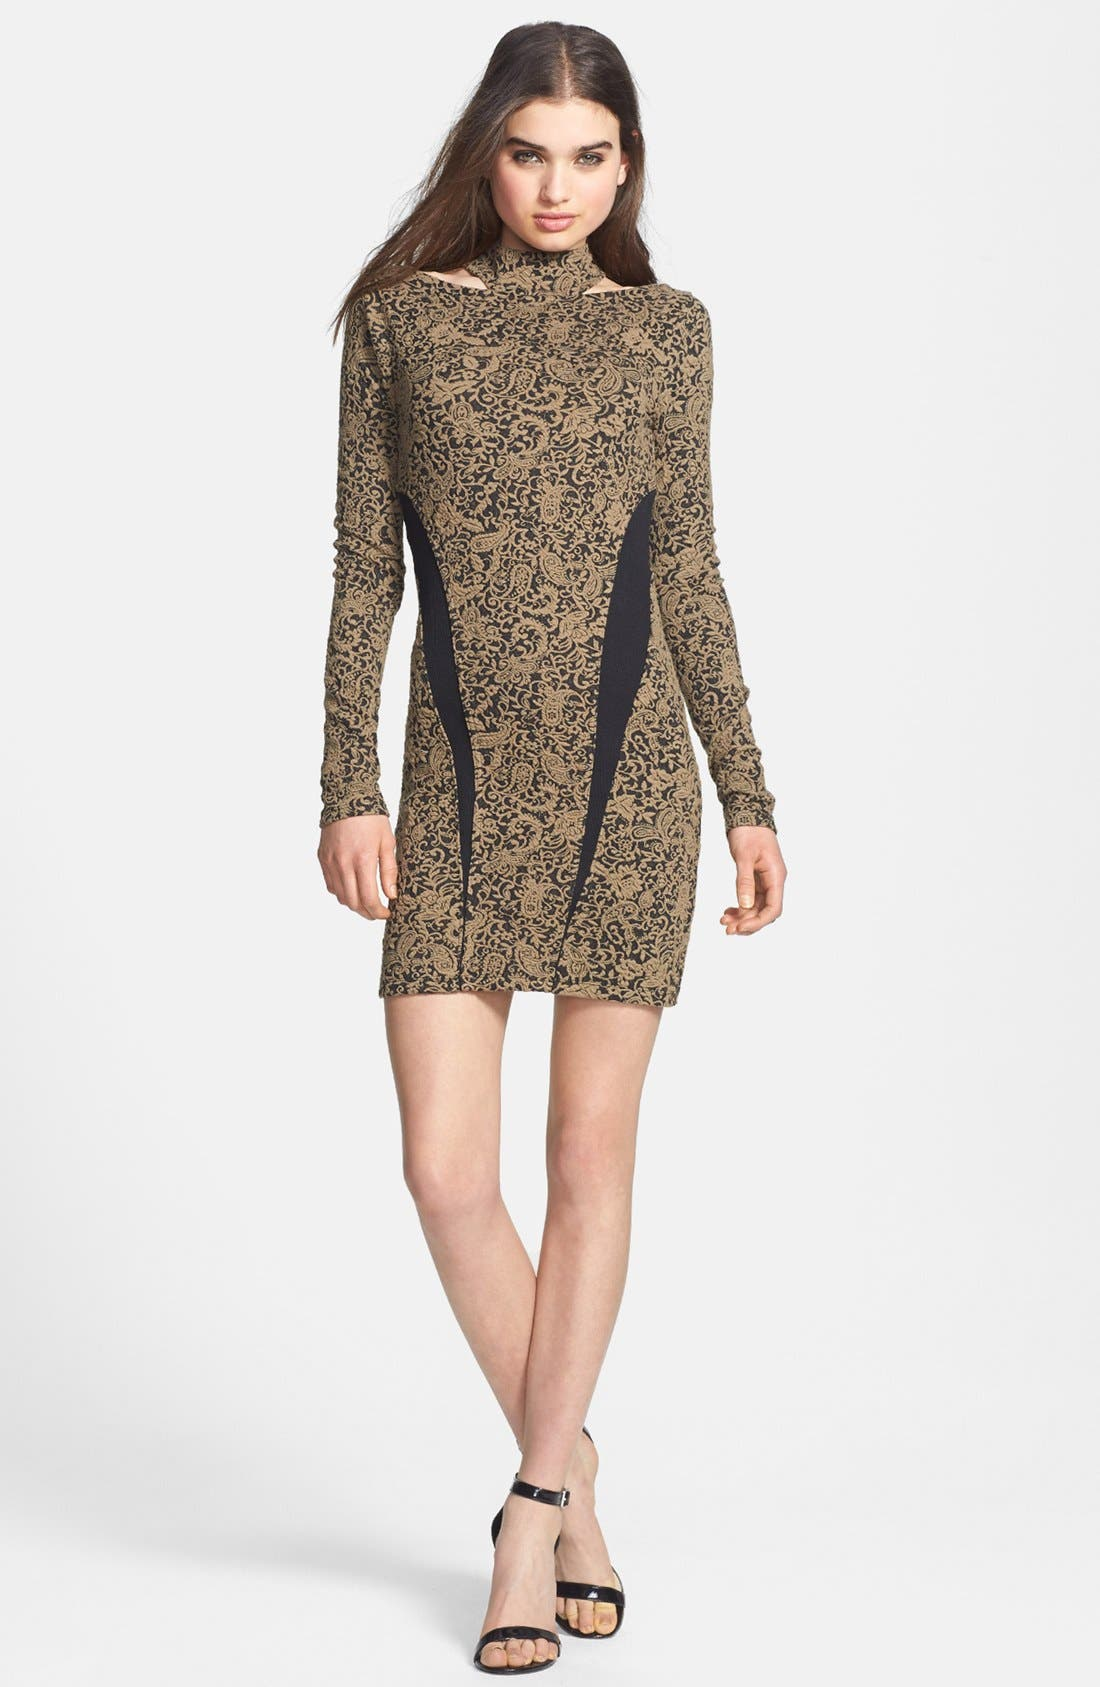 Alternate Image 1 Selected - Free People 'Night Play' Textured Paisley Dress